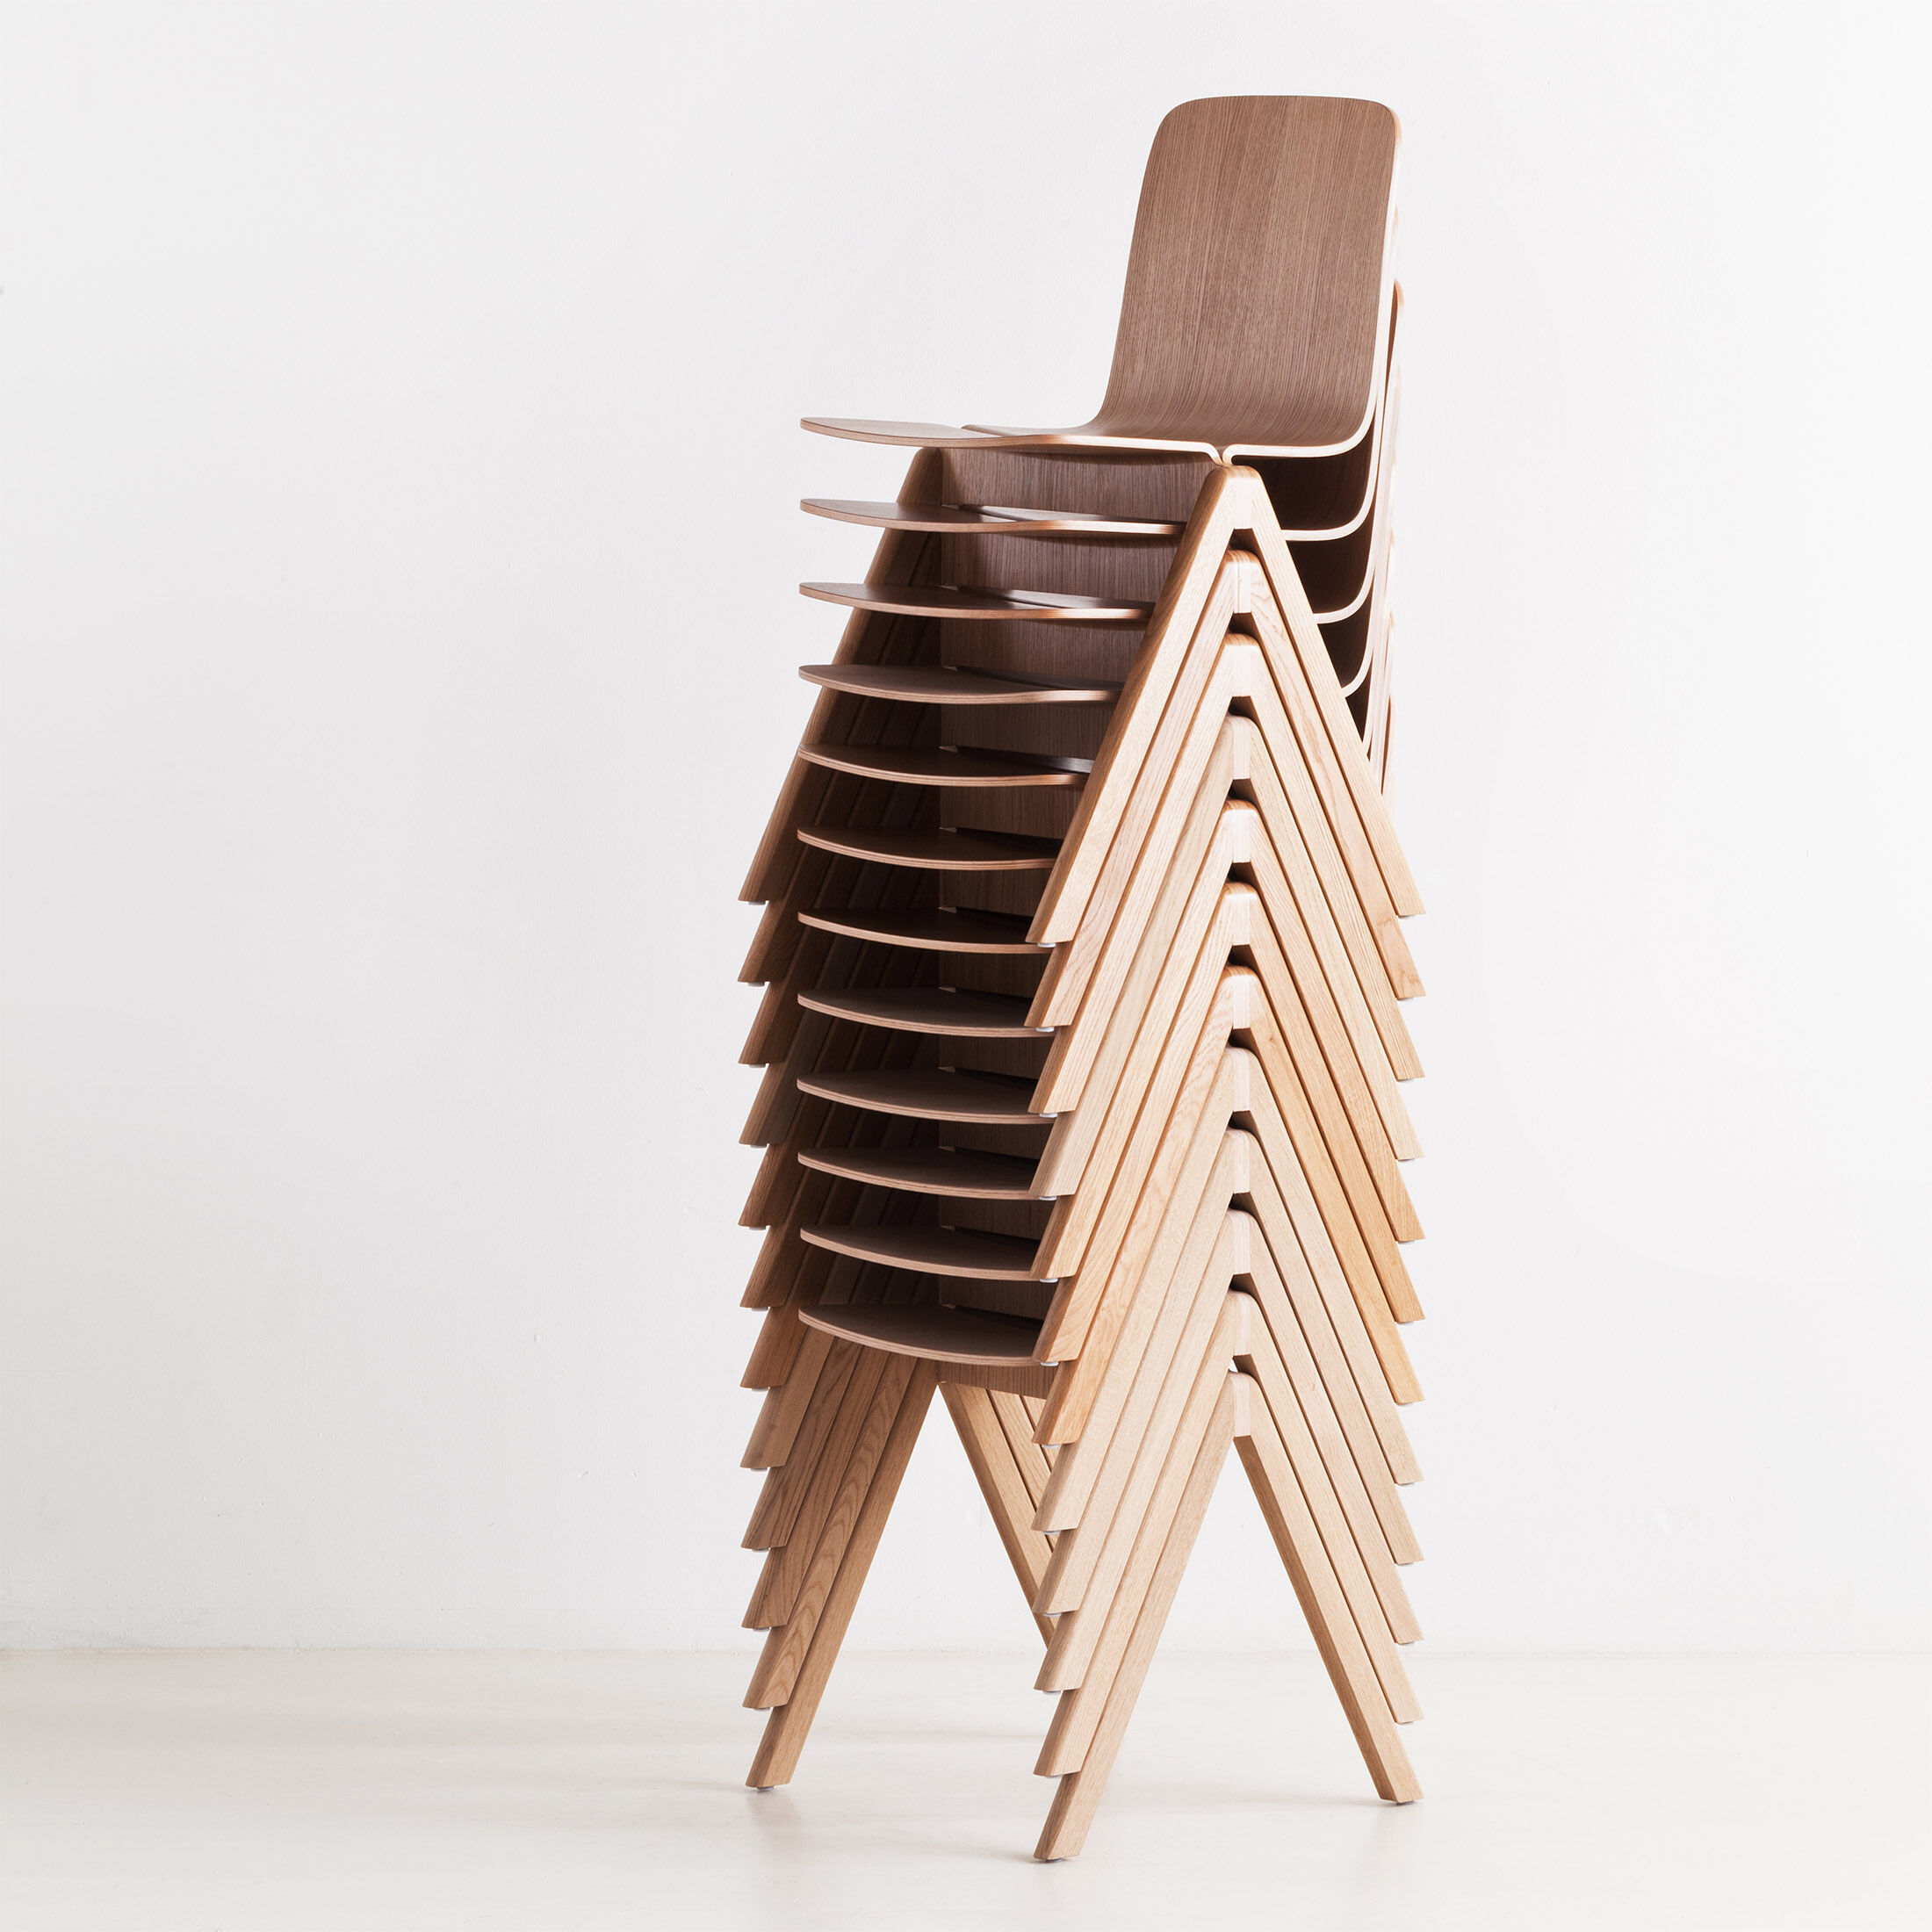 Bouroullec Brothers Copenhague Chair Oak in color Oak & Bouroullec Brothers Copenhague Chair Oak | MoMA Design Store | MoMA ...